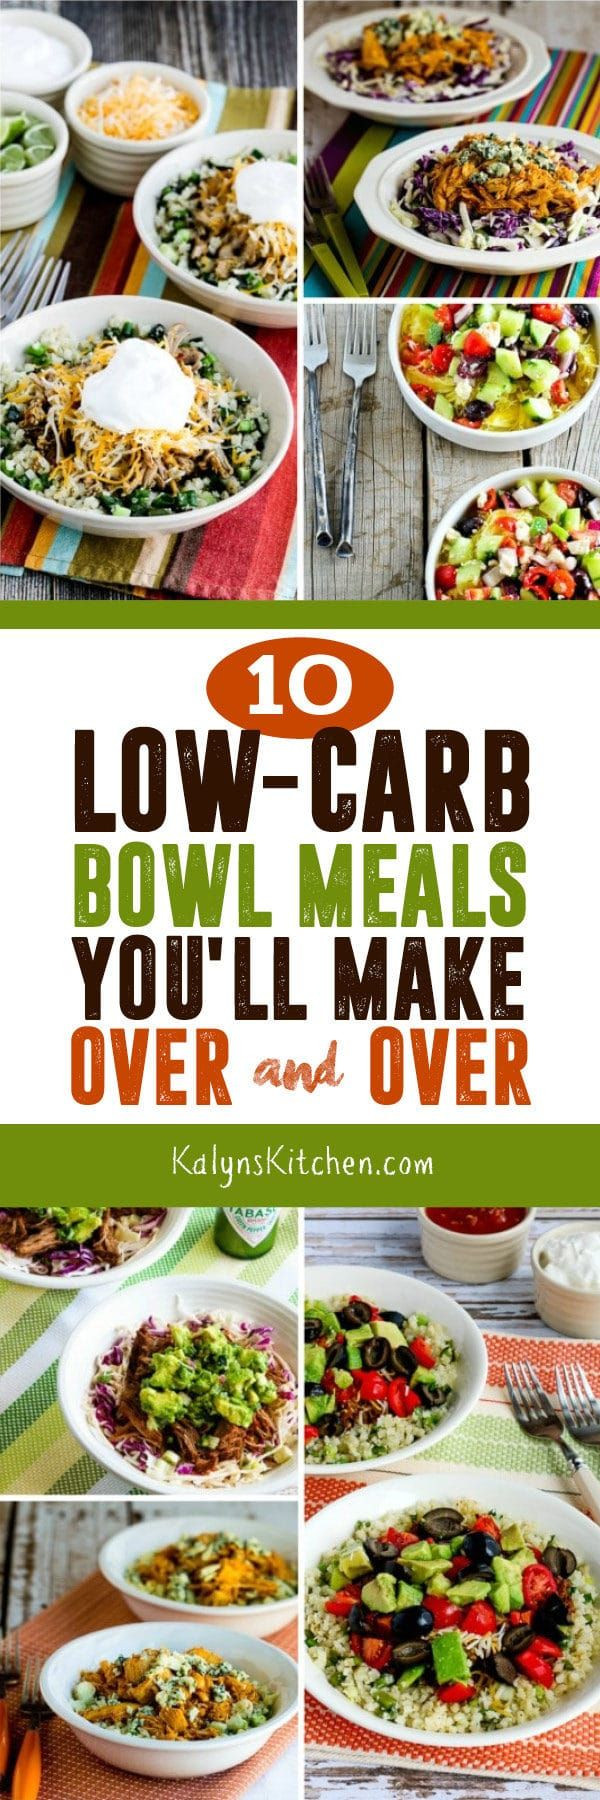 Check out this Recipe round-Up of 10 Low-Carb Bowl Meals You'll Make Over and Over! All these are favorite low-carb dinner ideas that I make often; hope you enjoy! [featured on KalynsKitchen.com] #LowCarbDinner #LowCarbBowlMeal #LowCarbRecipes #LowCarbBowlMealRecipes